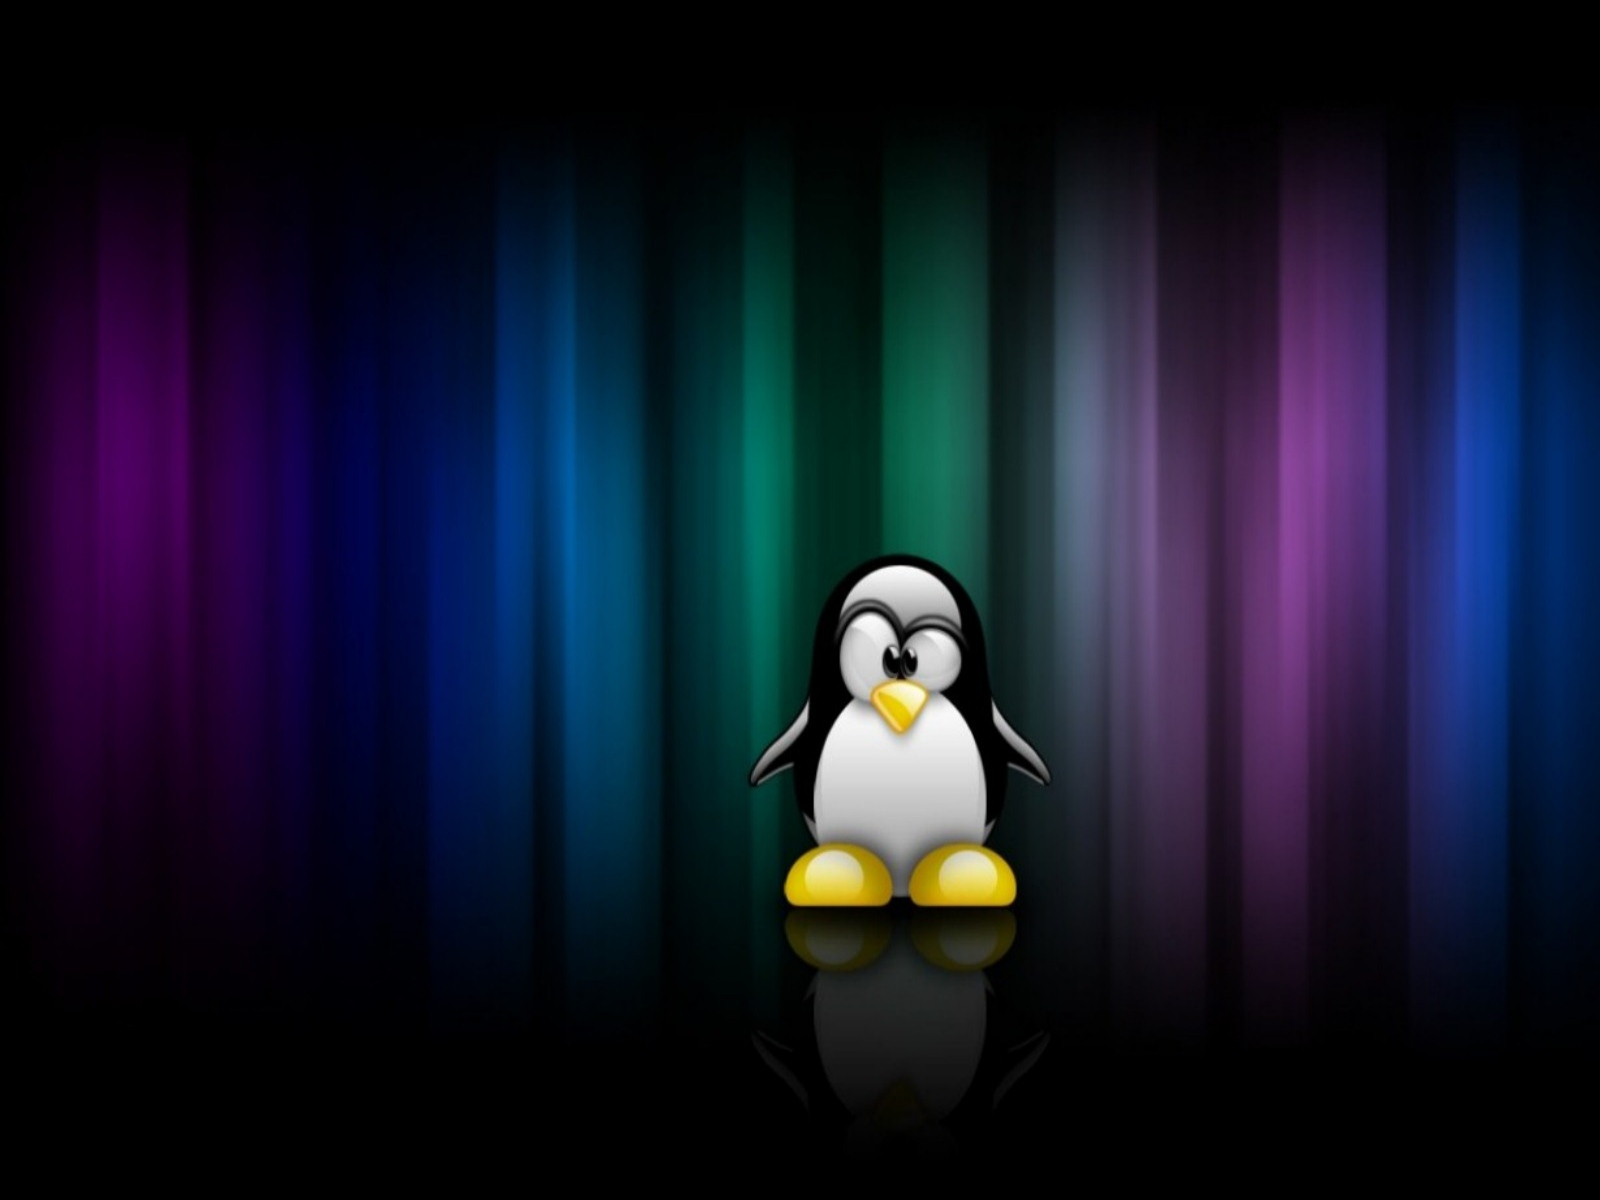 related pictures linux desktop wallpaper hd linux background download 1600x1200